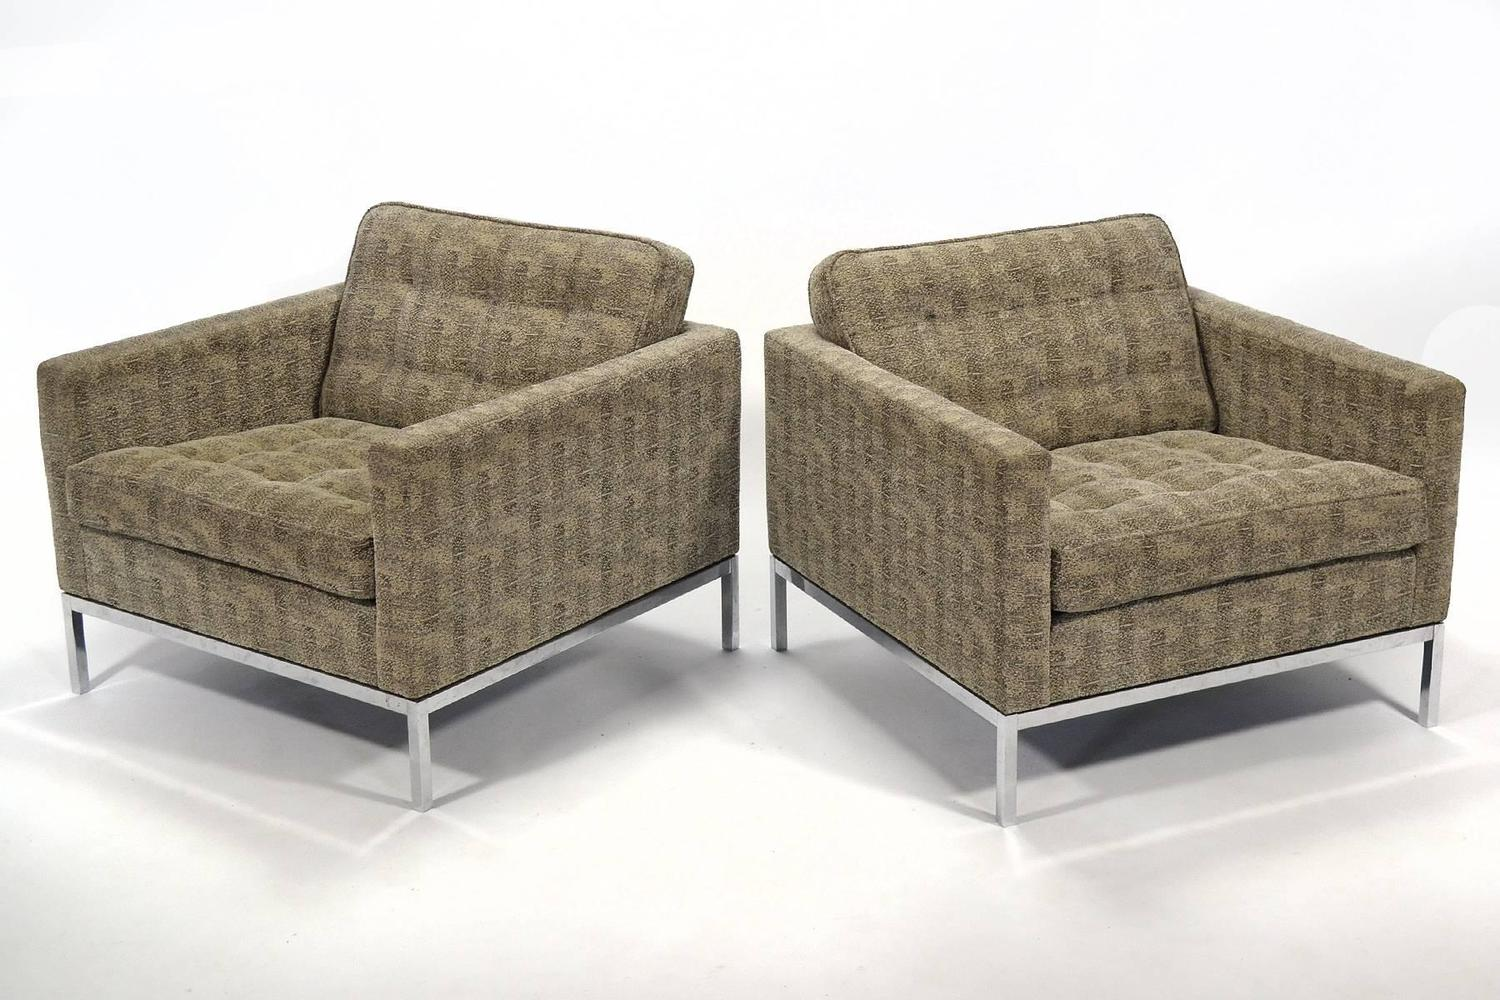 Tuxedo Chair Florence Knoll Tuxedo Lounge Chair Pair For Sale At 1stdibs